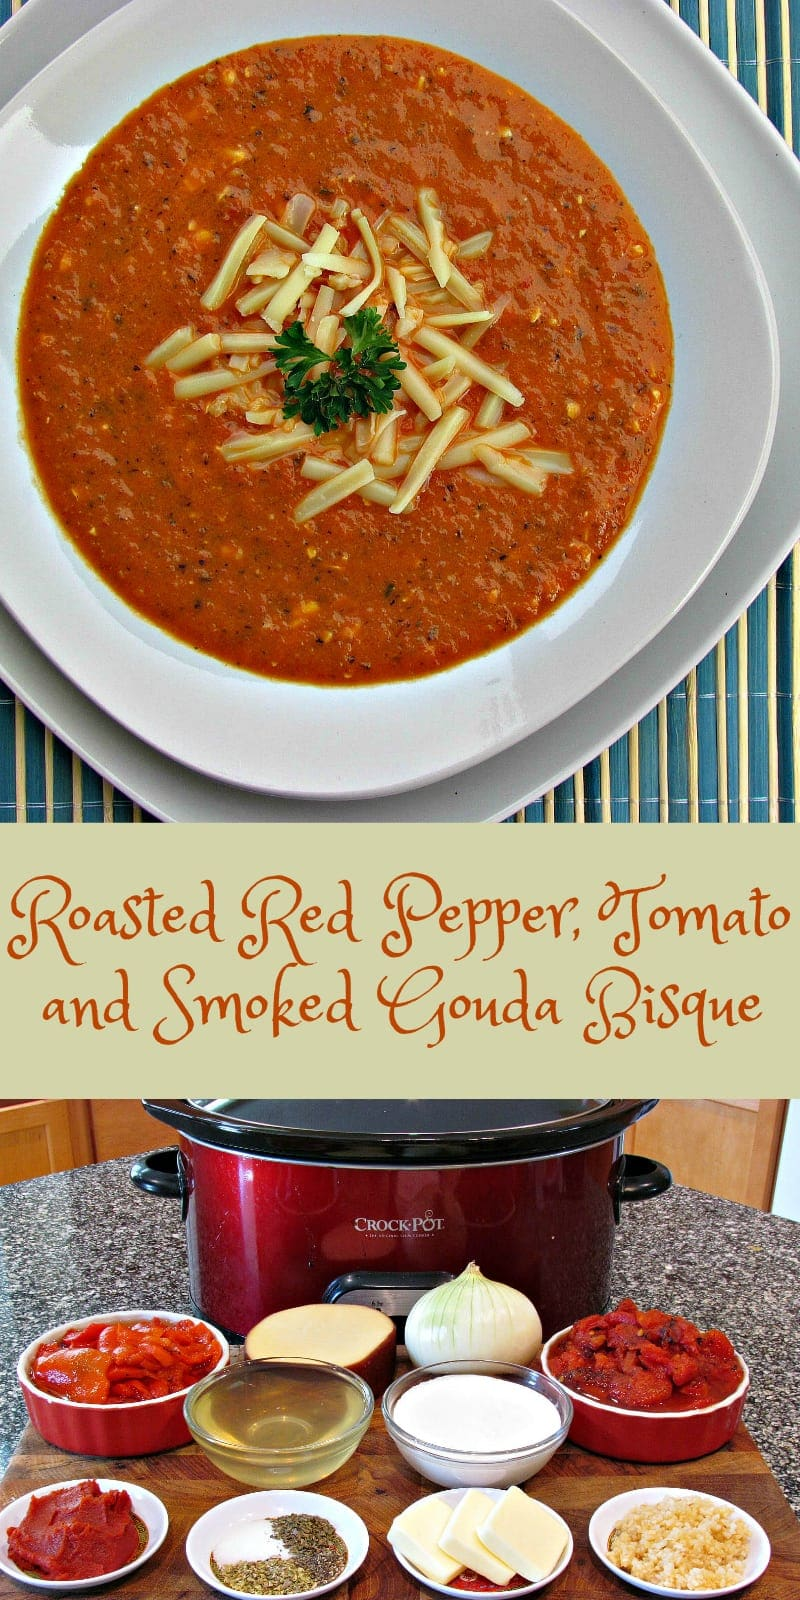 Roasted Red Pepper, Tomato and Smoked Gouda Bisque Soup